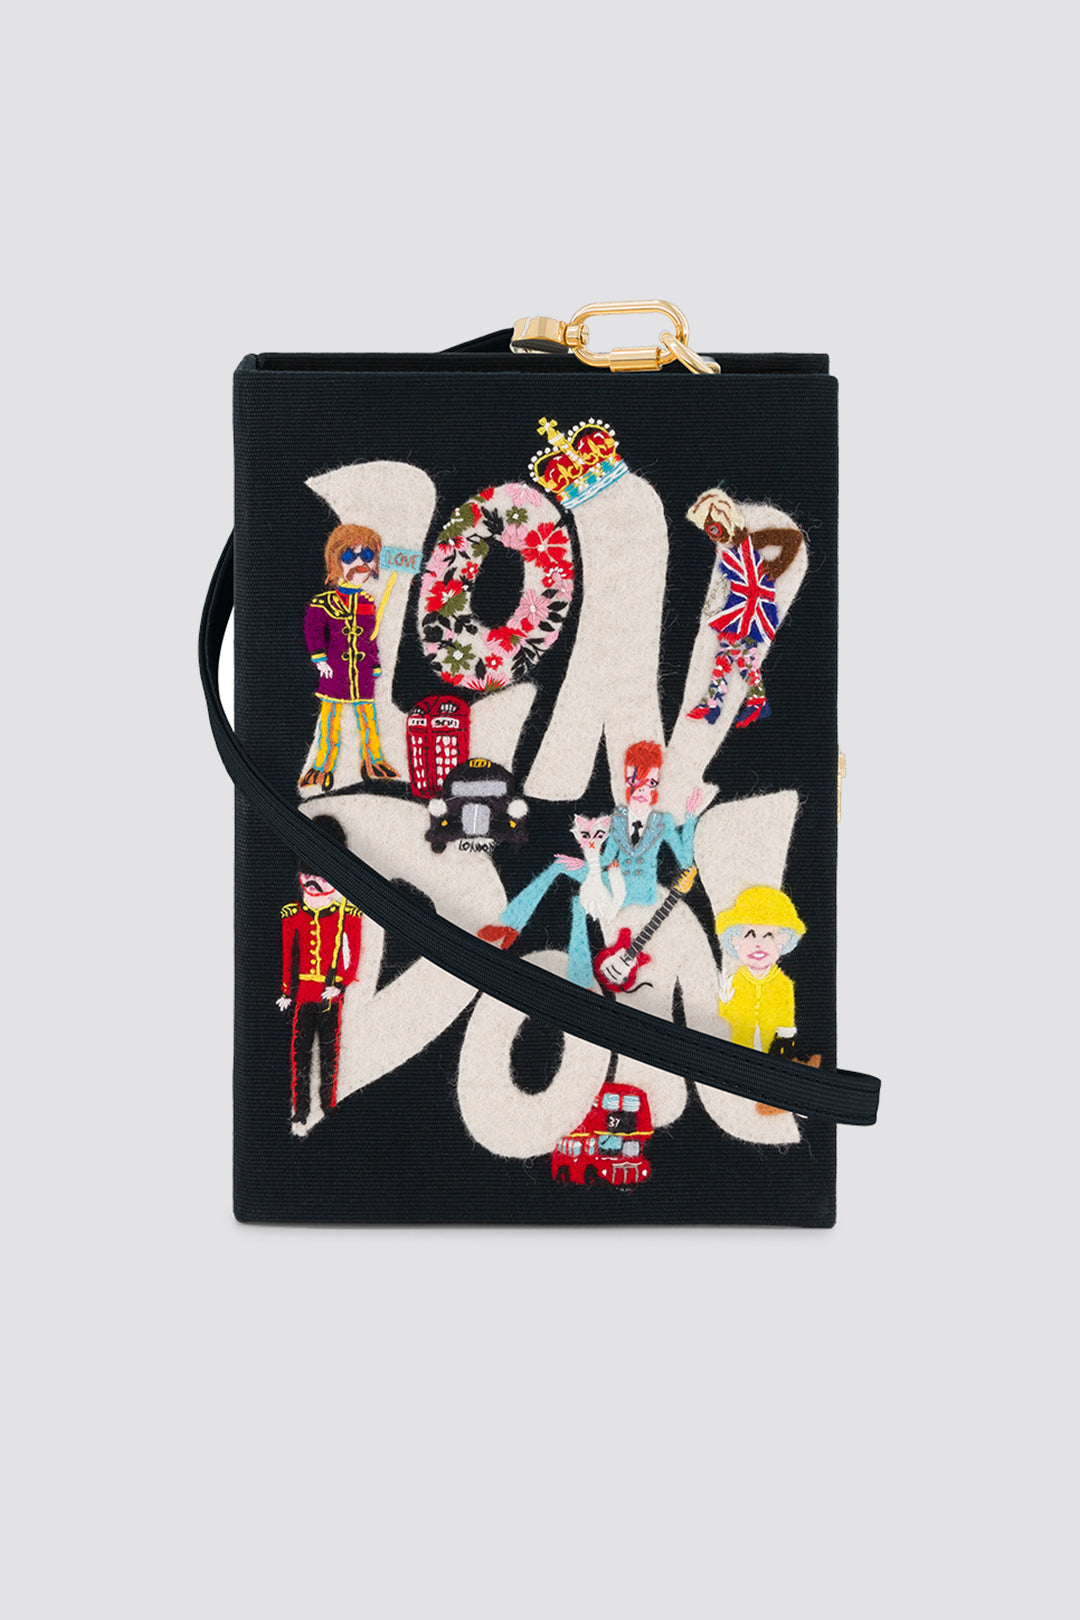 Olympia Le-Tan x Racil London clutch with strap <br>pre-order